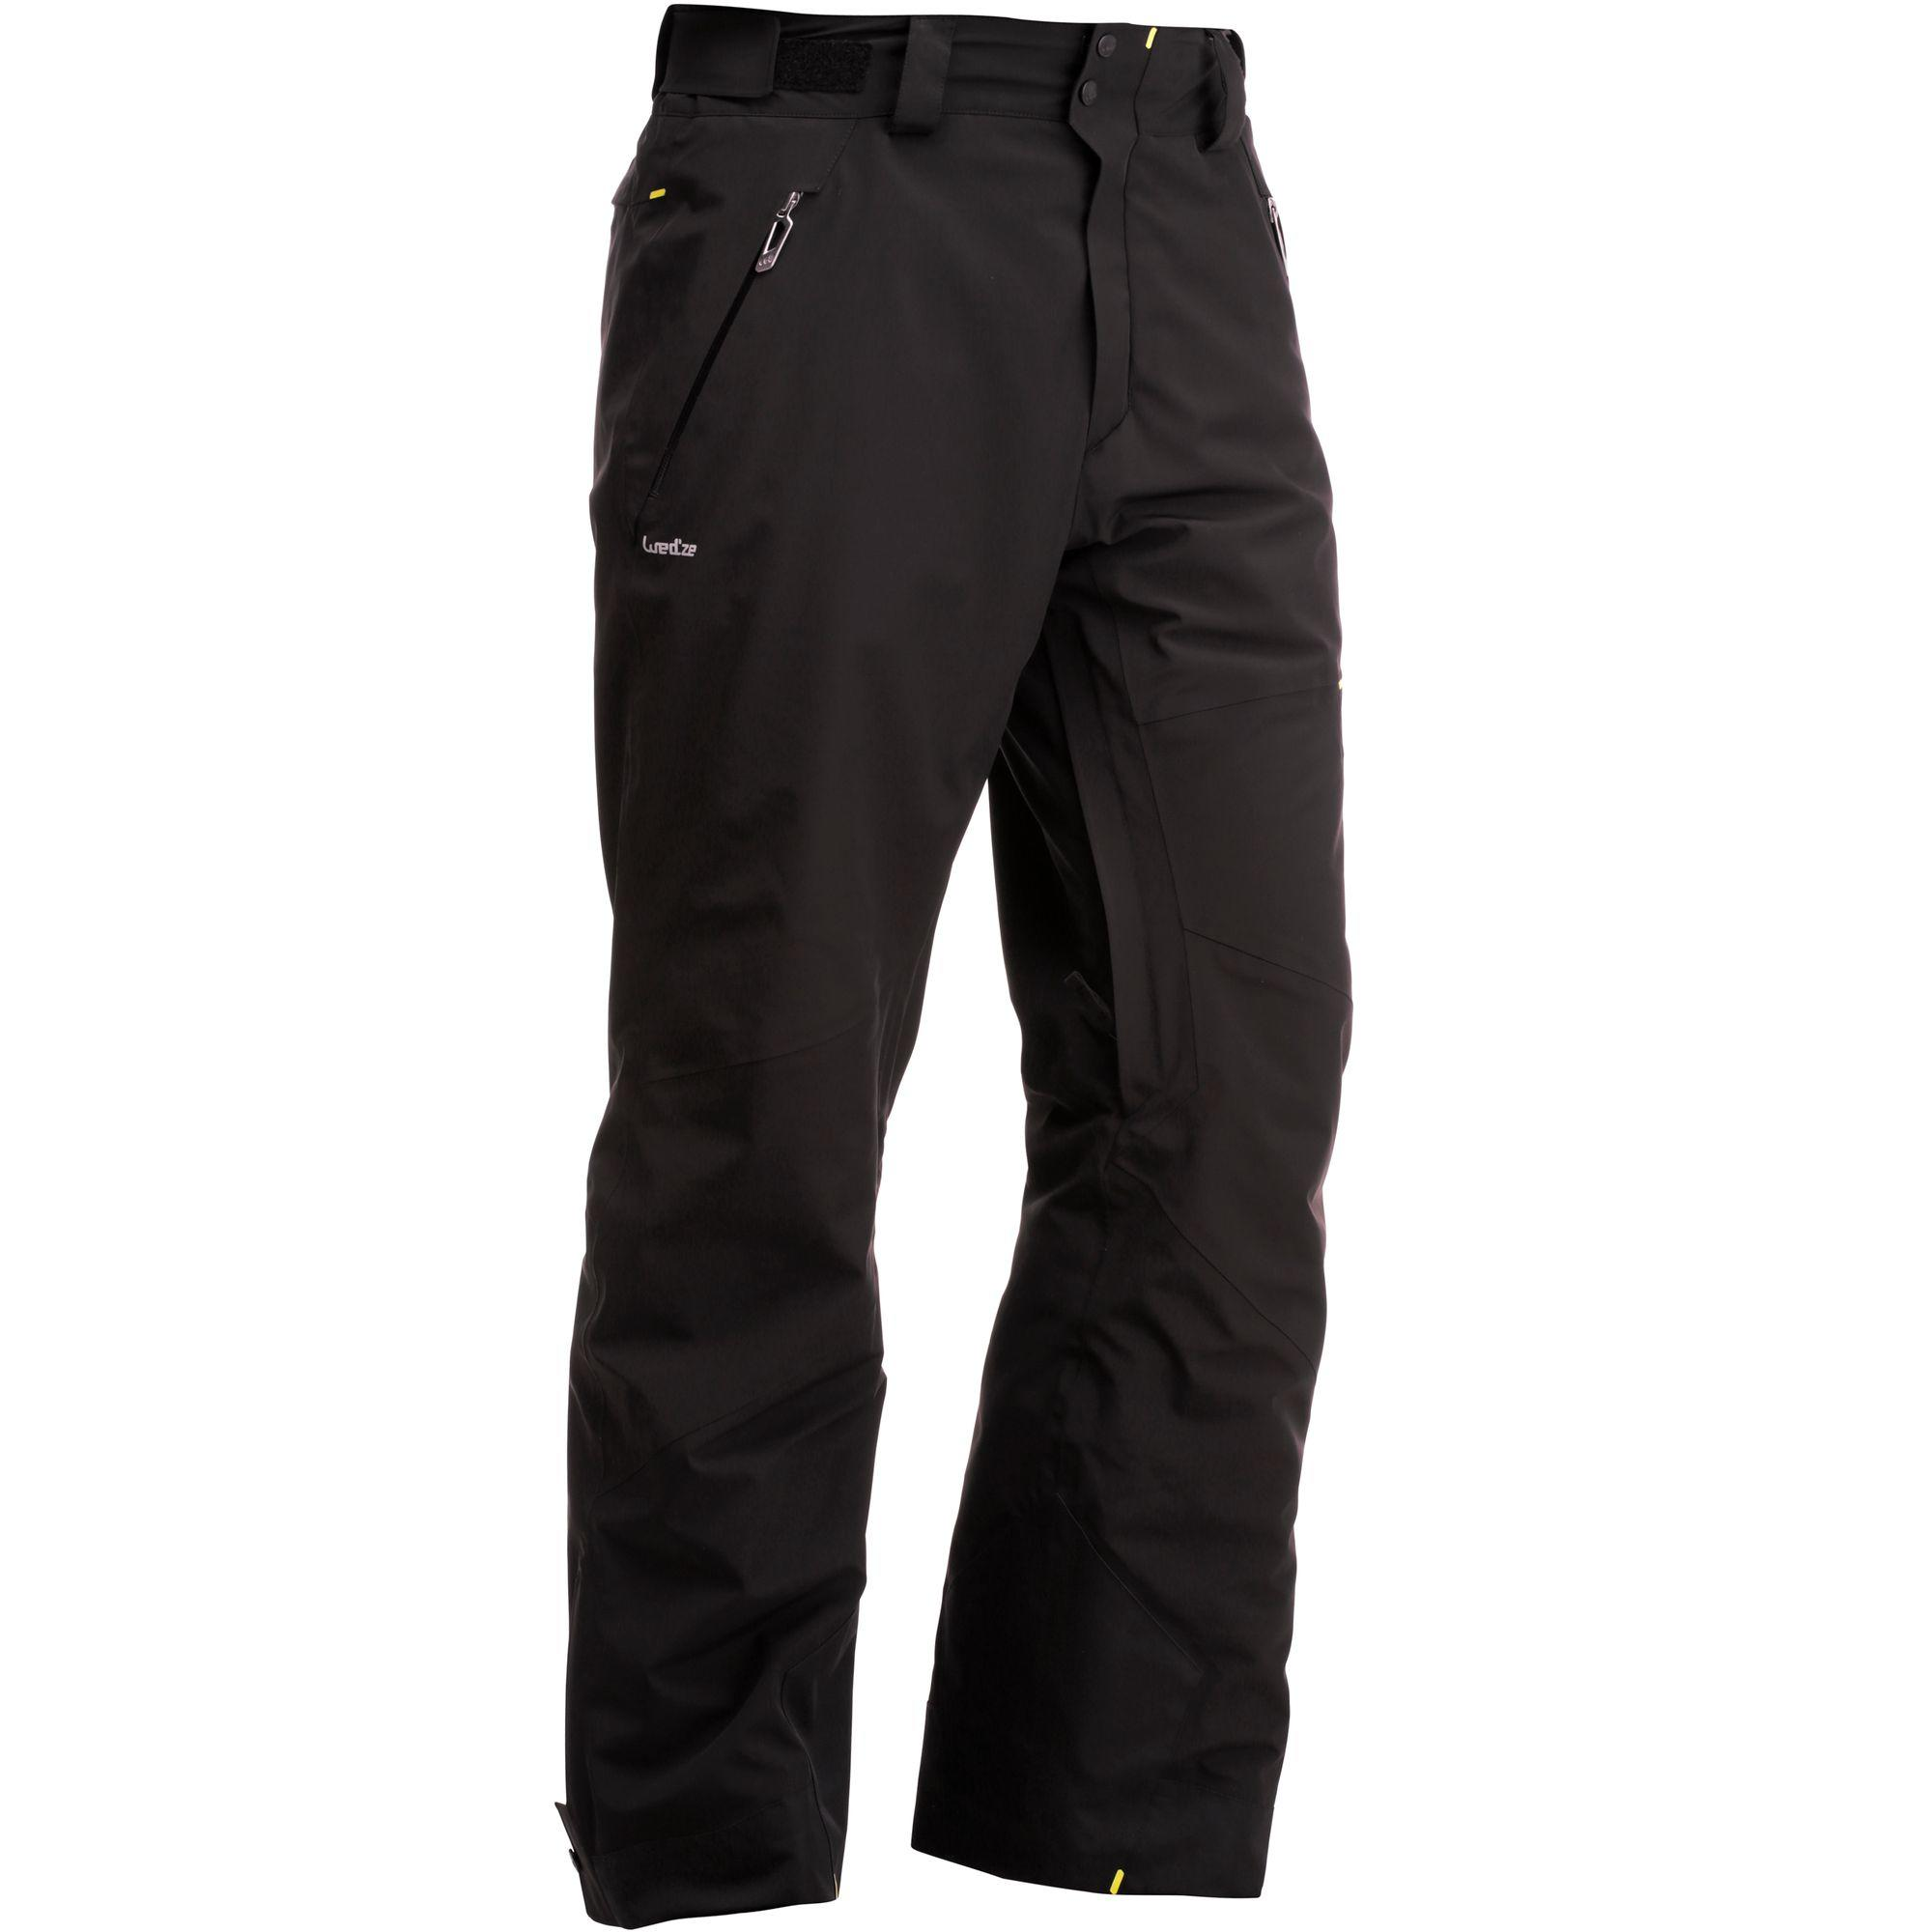 Ski-P PA 900 Men's Downhill Ski Pants - Black